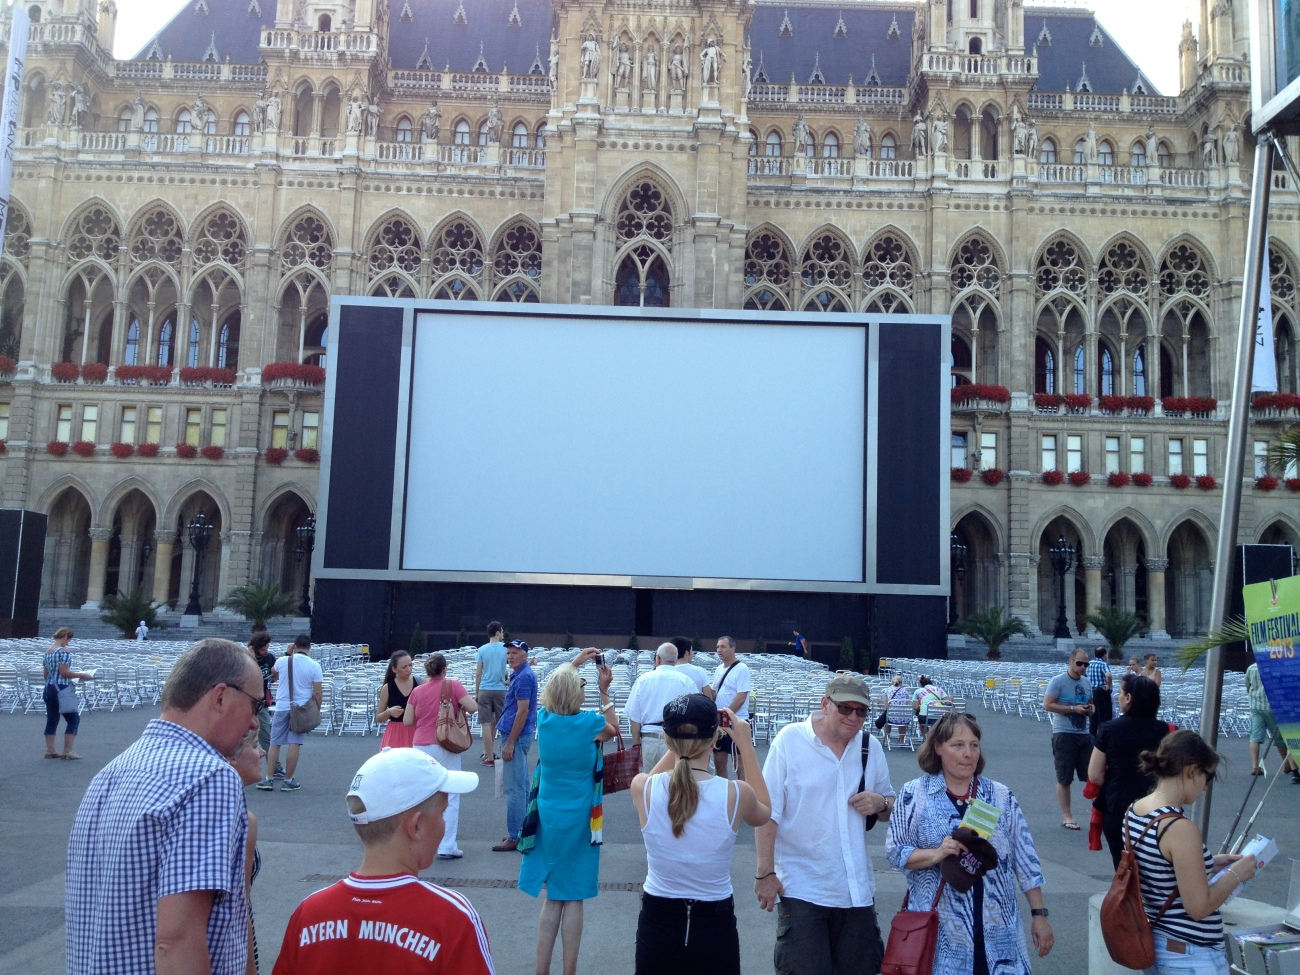 The big, big screen at the Vienna town hall.